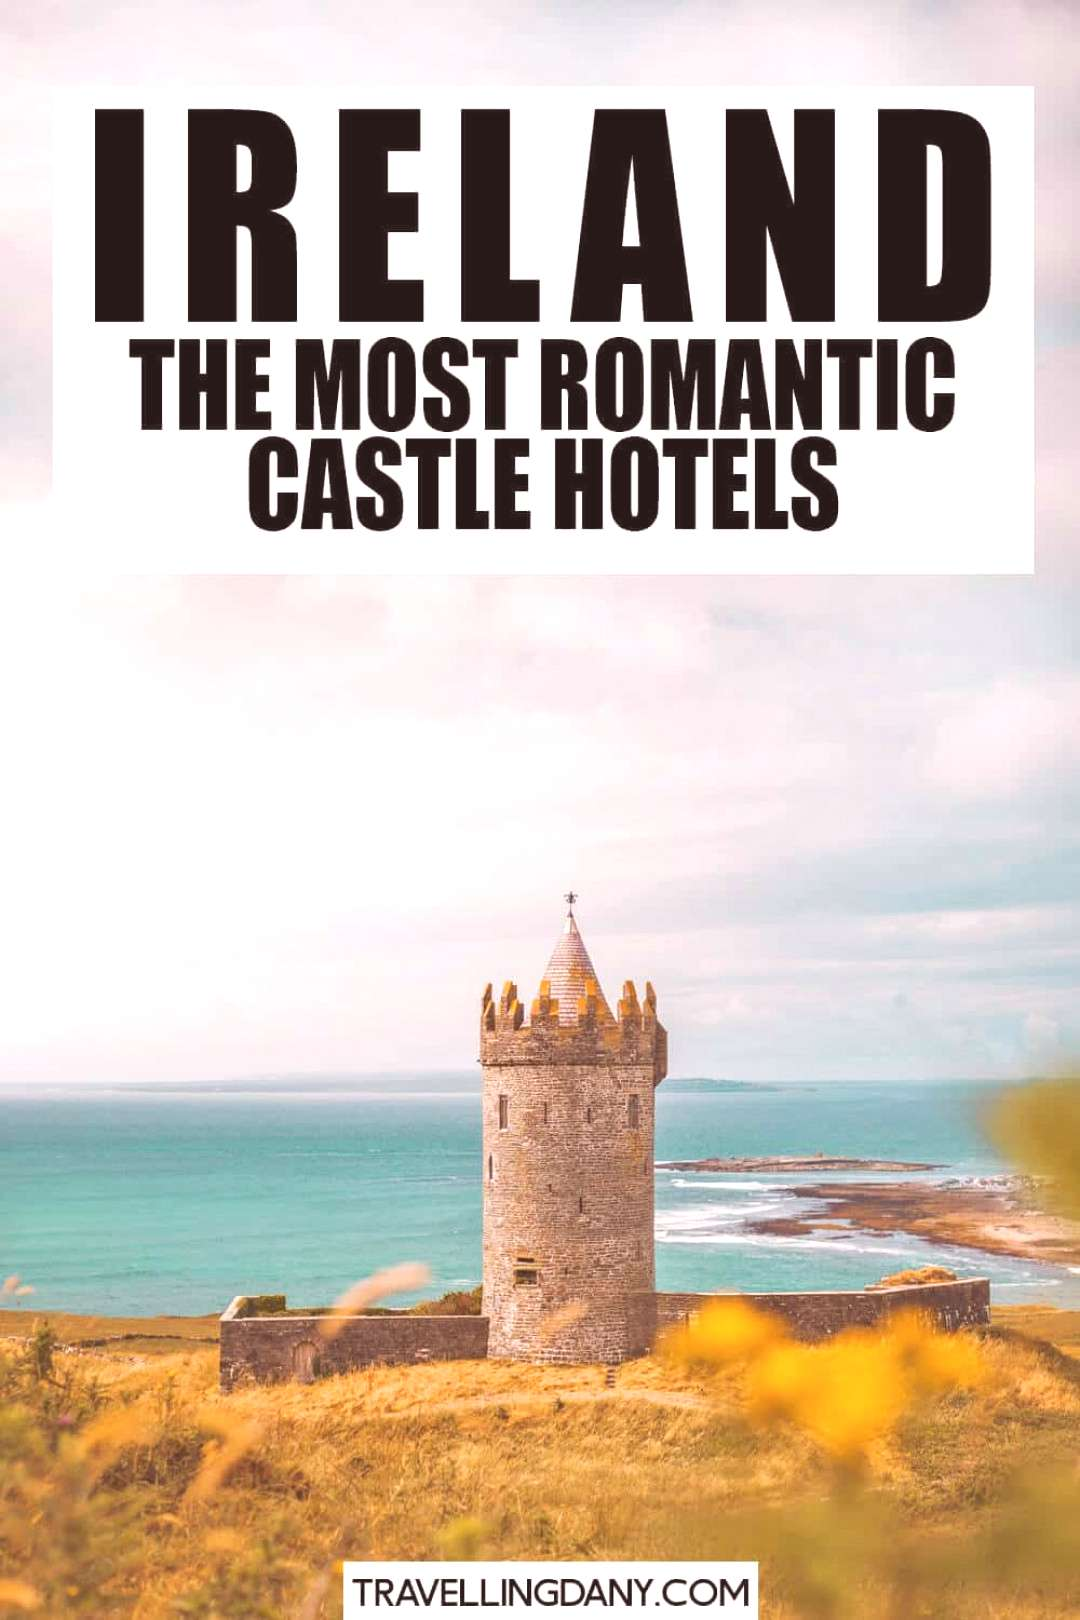 Feel like a princess 15 affordable castle hotels in Ireland! Are you planning a romantic trip to I